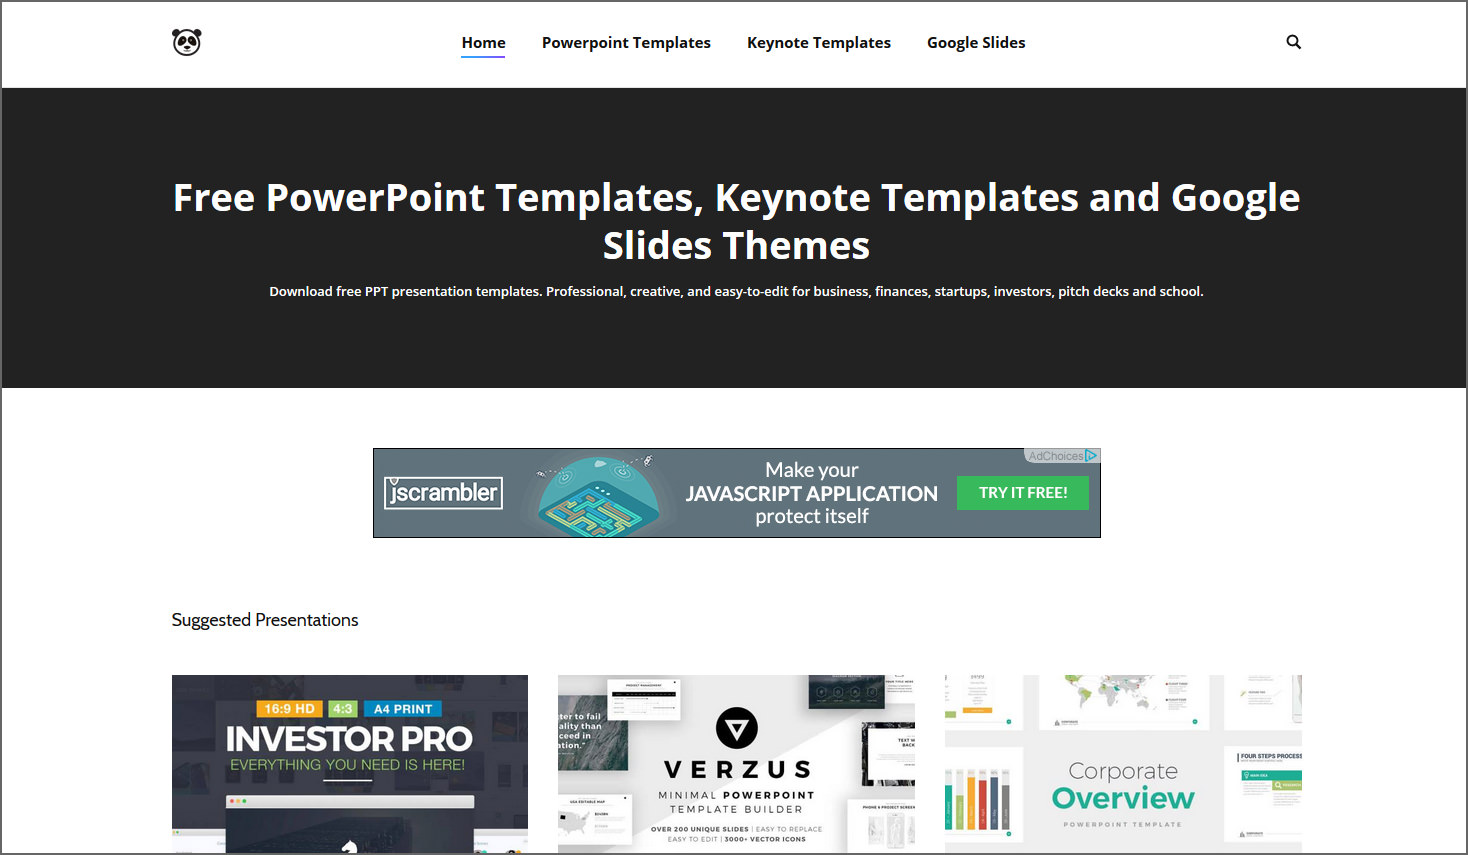 google doc powerpoint templates - 4 sites with free beautiful powerpoint templates keynotes